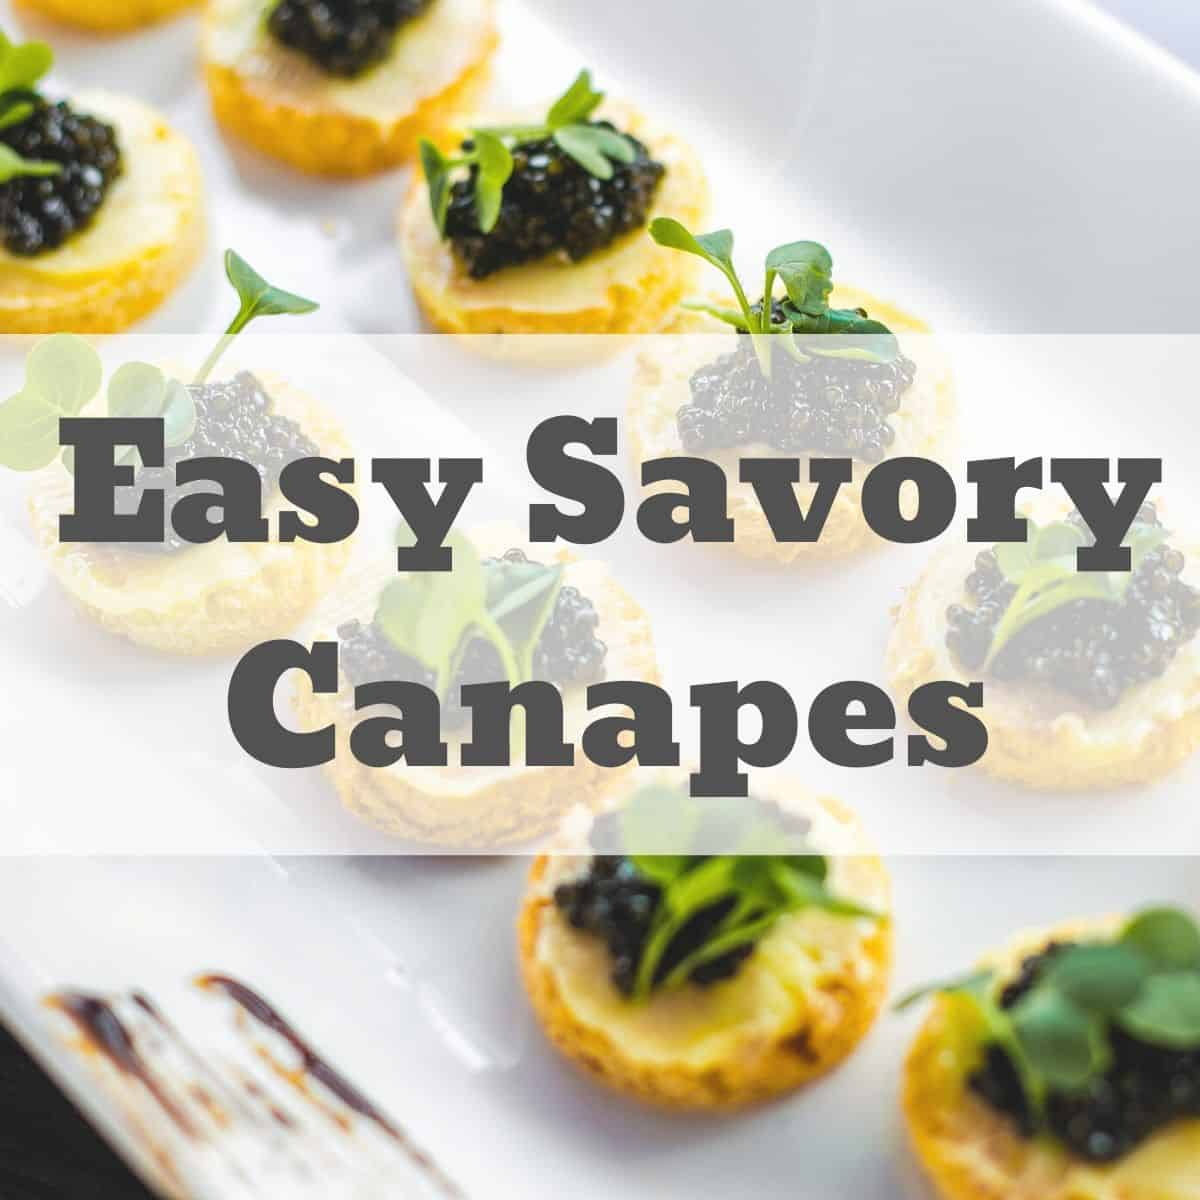 canapes on a plate with banner text